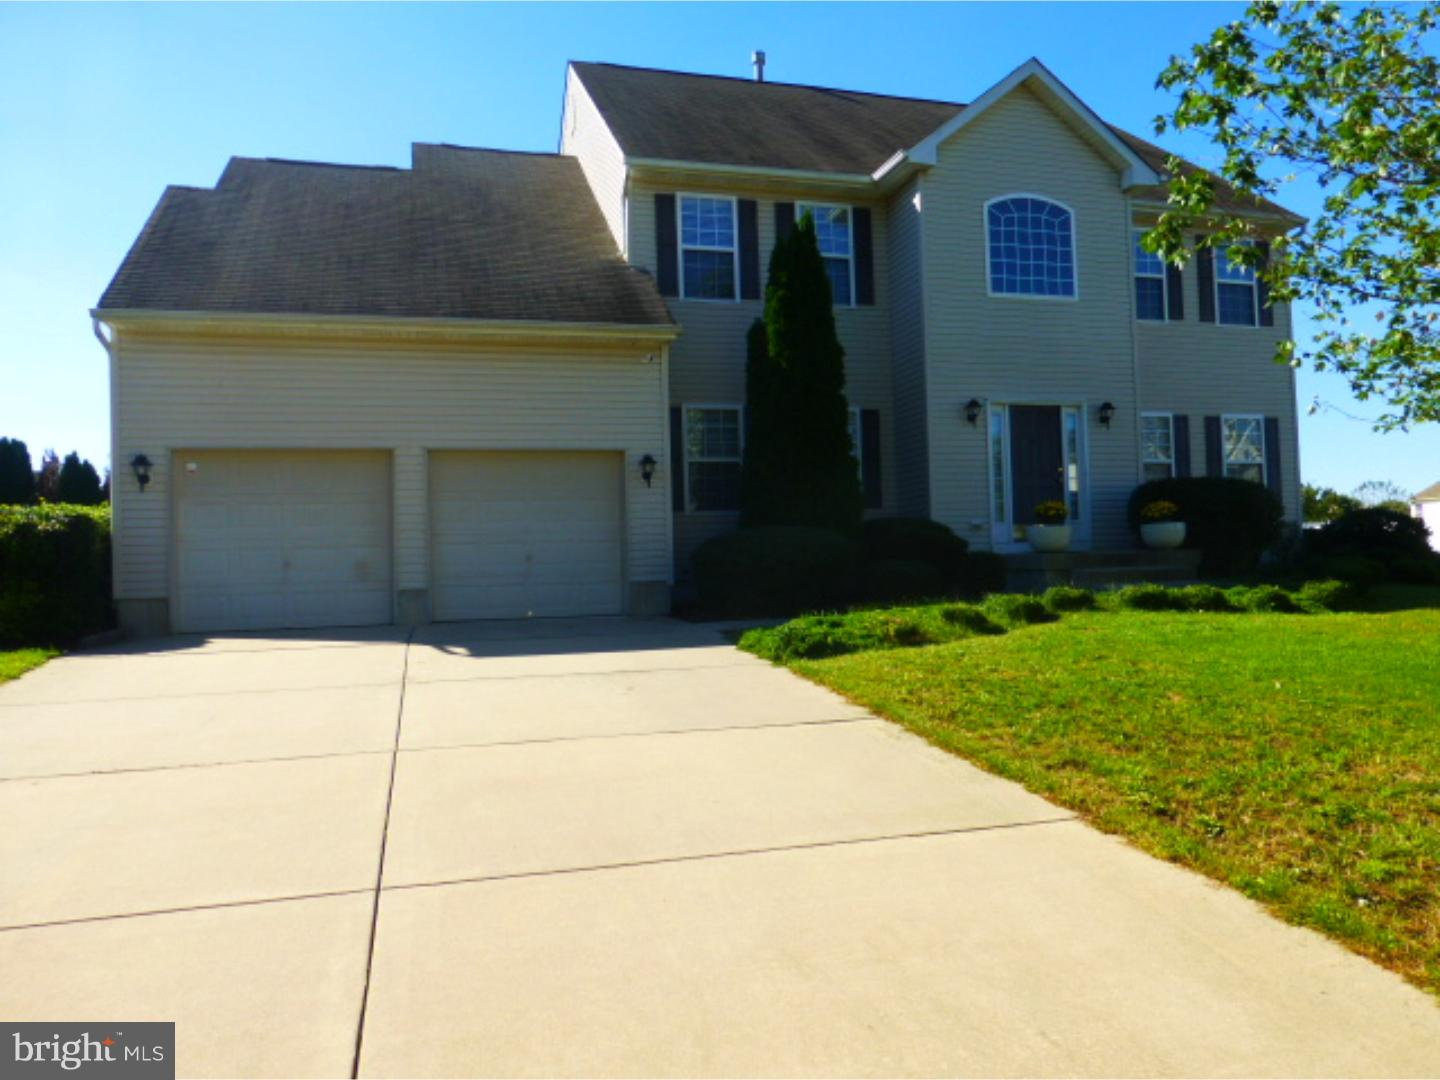 Single Family Home for Sale at 504 KIMBERLY Drive Millville, New Jersey 08332 United States